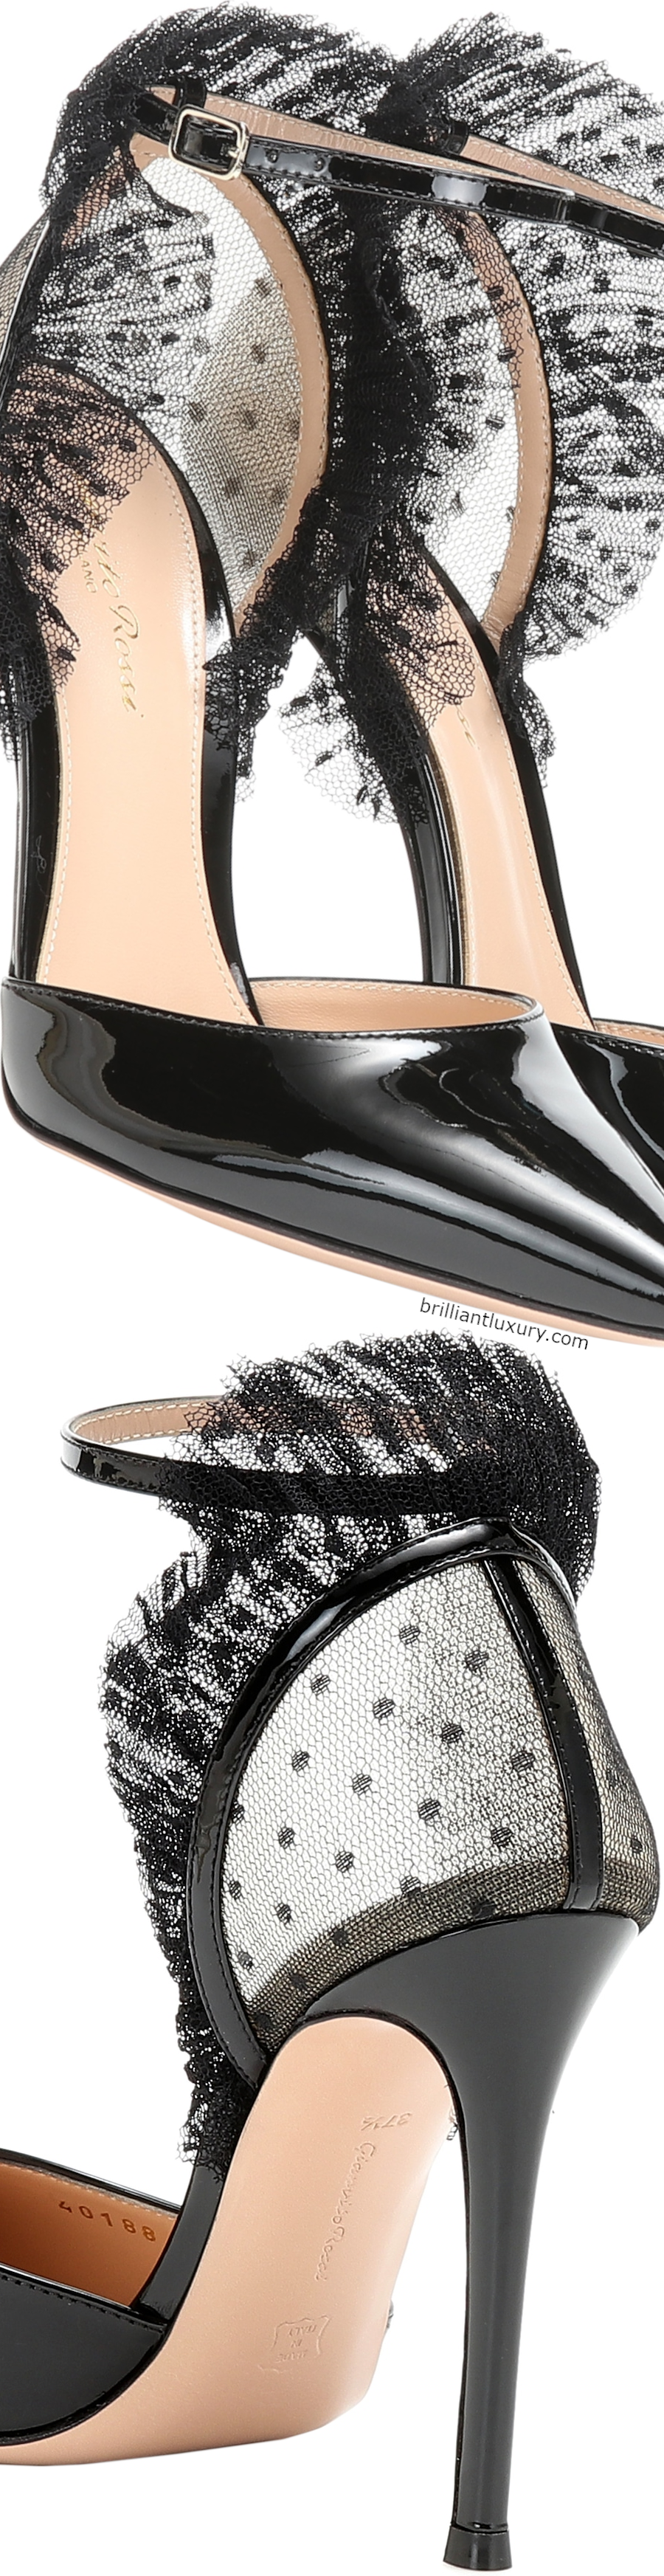 Gianvito Rossi tulle and patent leather pumps #black #shoes #accessories